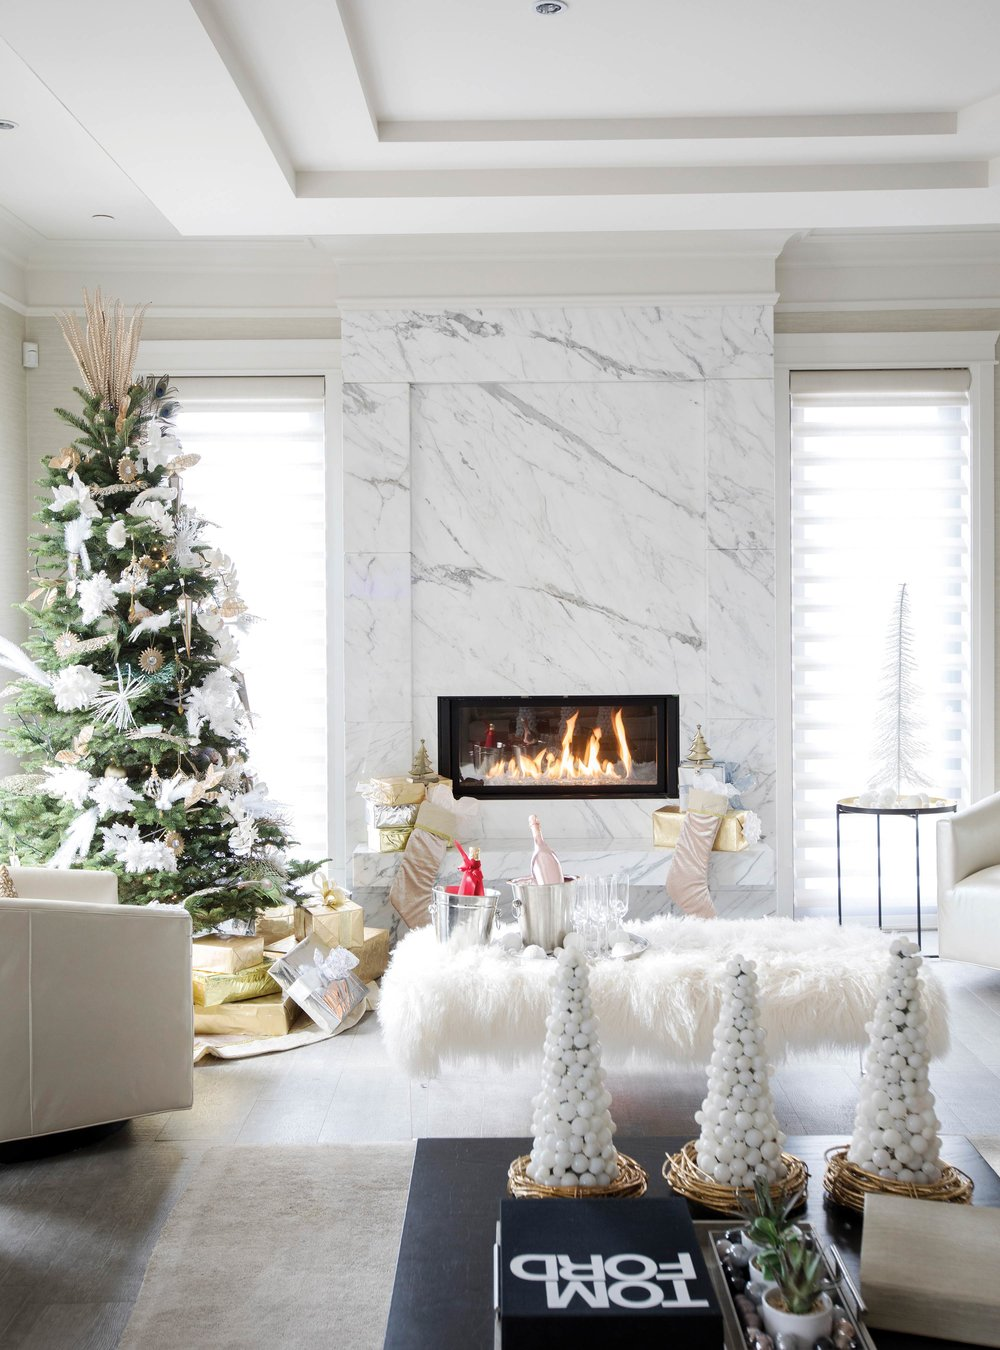 The colour palette of white and gold continues into a gathering area. Natural and manmade objects accent the area with gold, silver, and white ornaments, gift-wrapping, and accent lights on the tree.